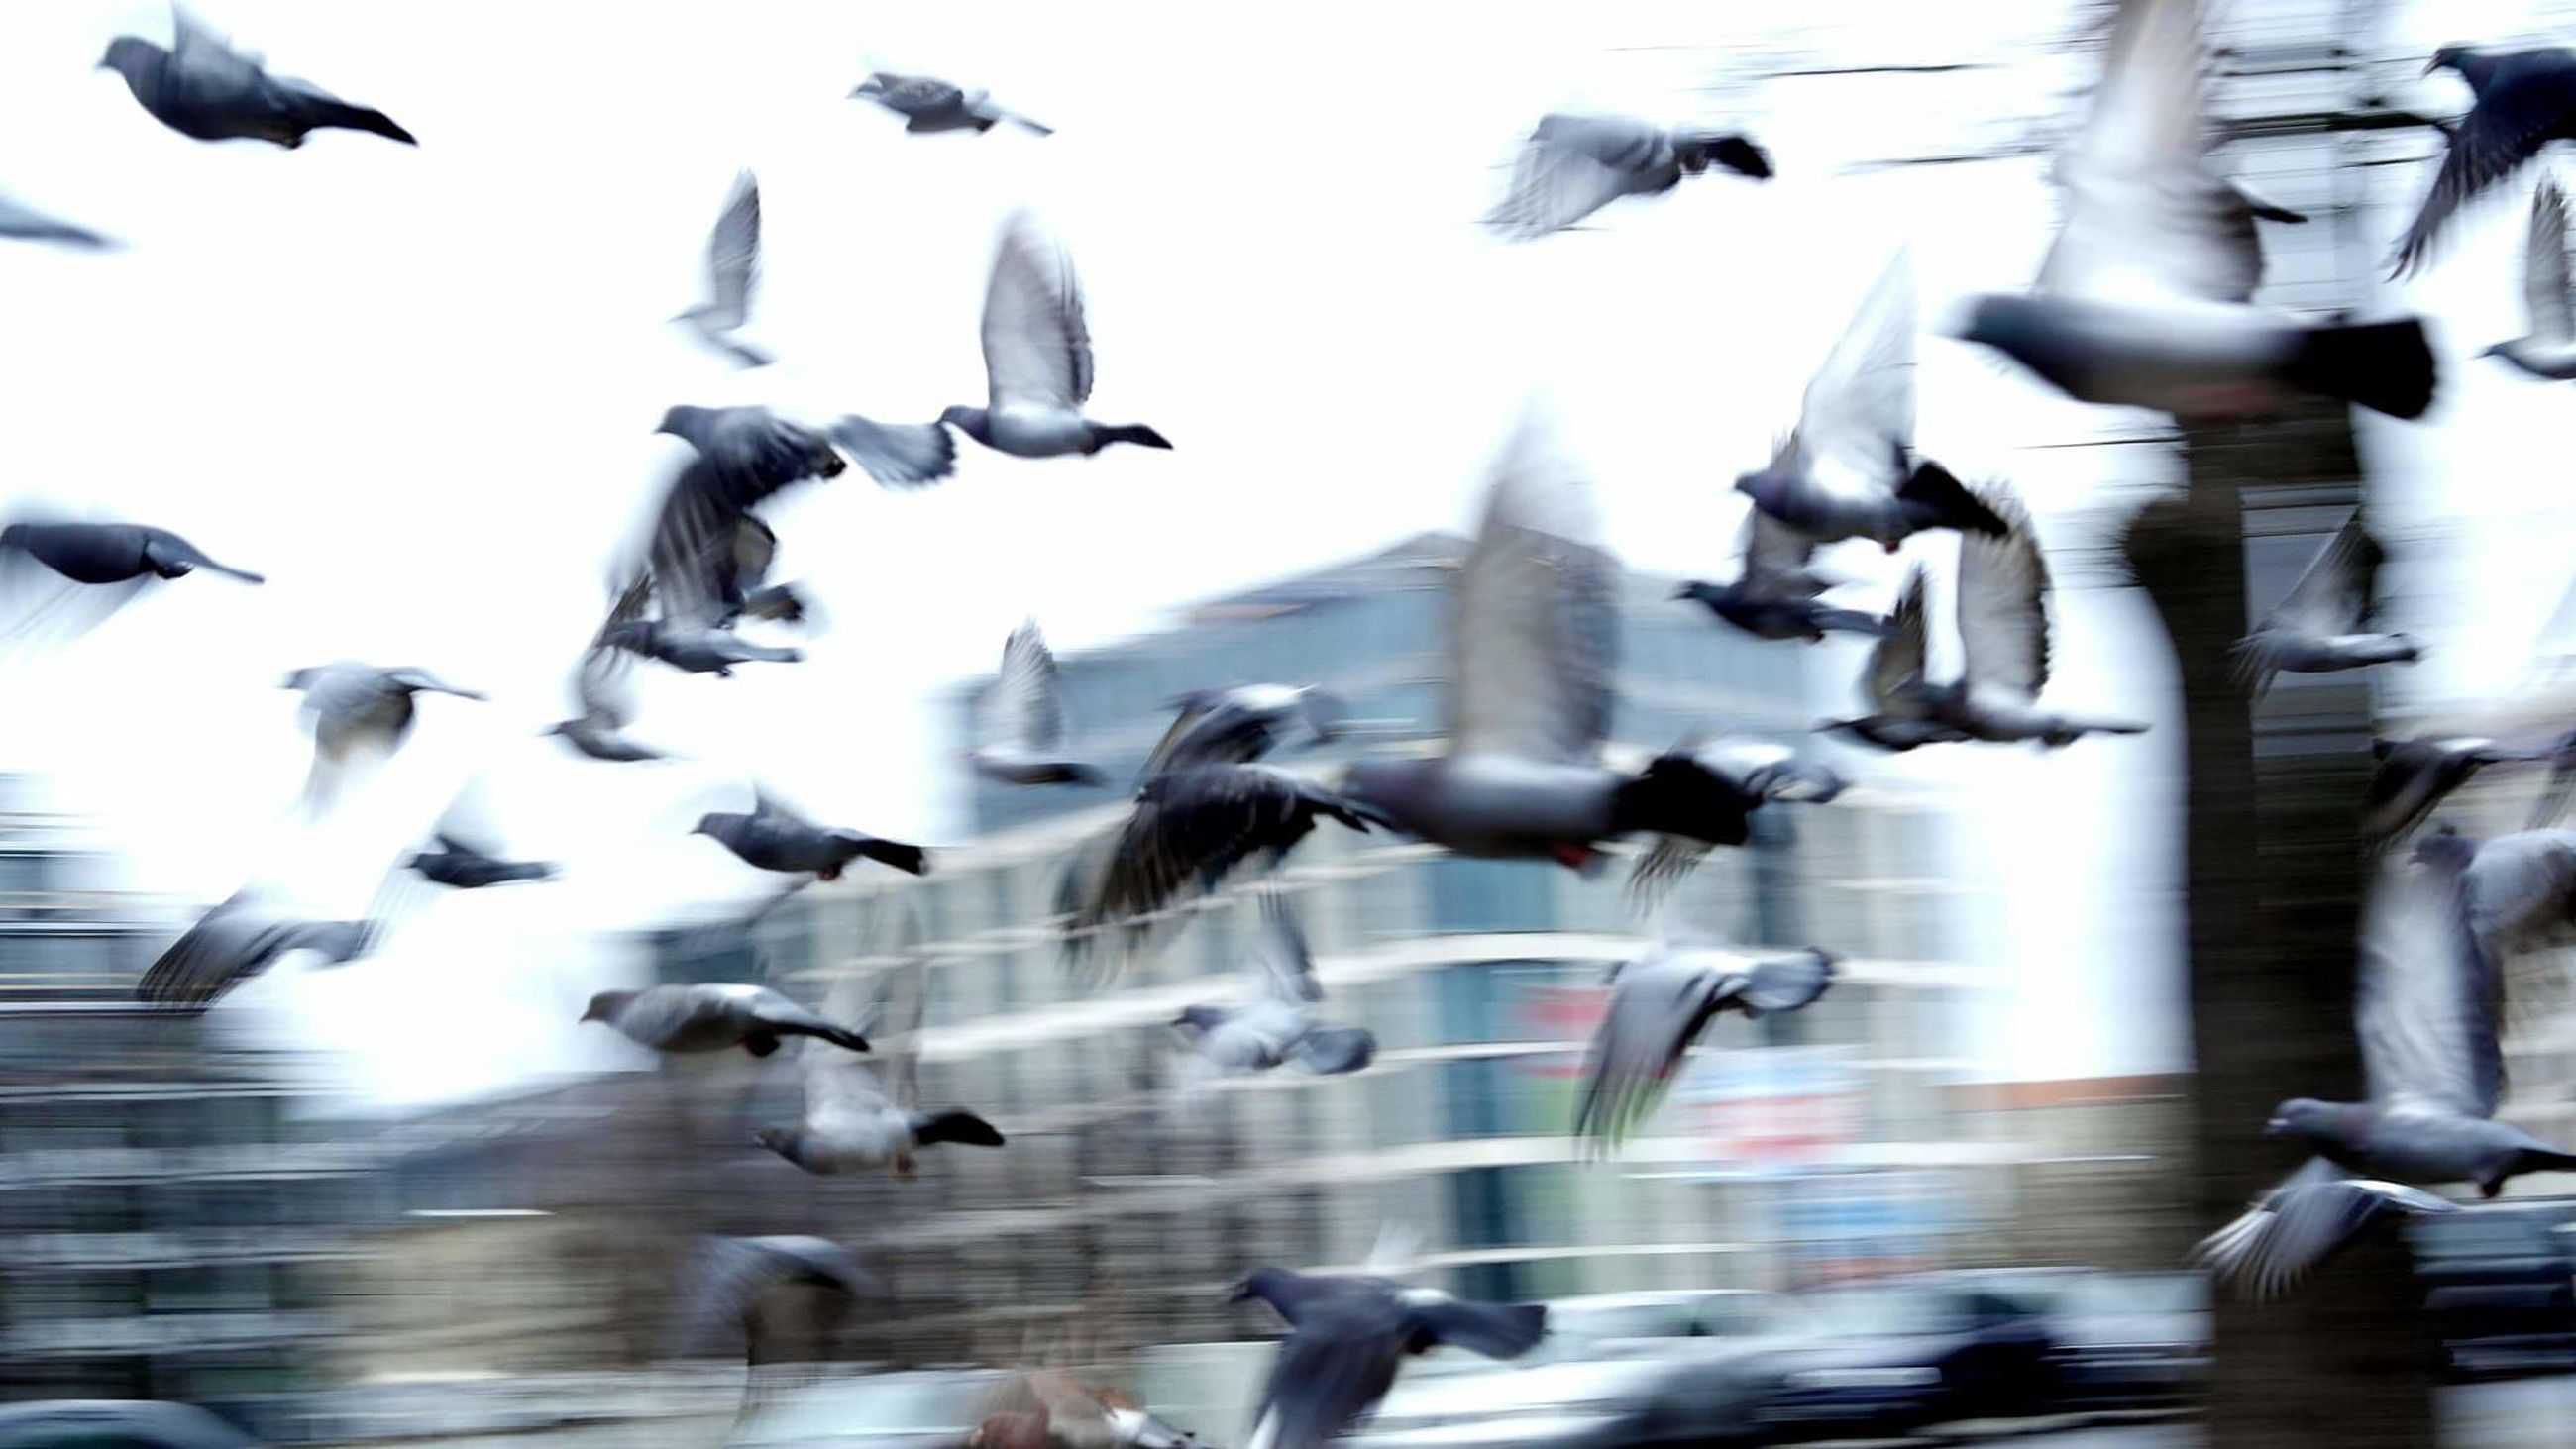 bird, flying, animal themes, animals in the wild, wildlife, flock of birds, motion, mid-air, pigeon, large group of people, on the move, blurred motion, street, spread wings, day, seagull, city life, outdoors, built structure